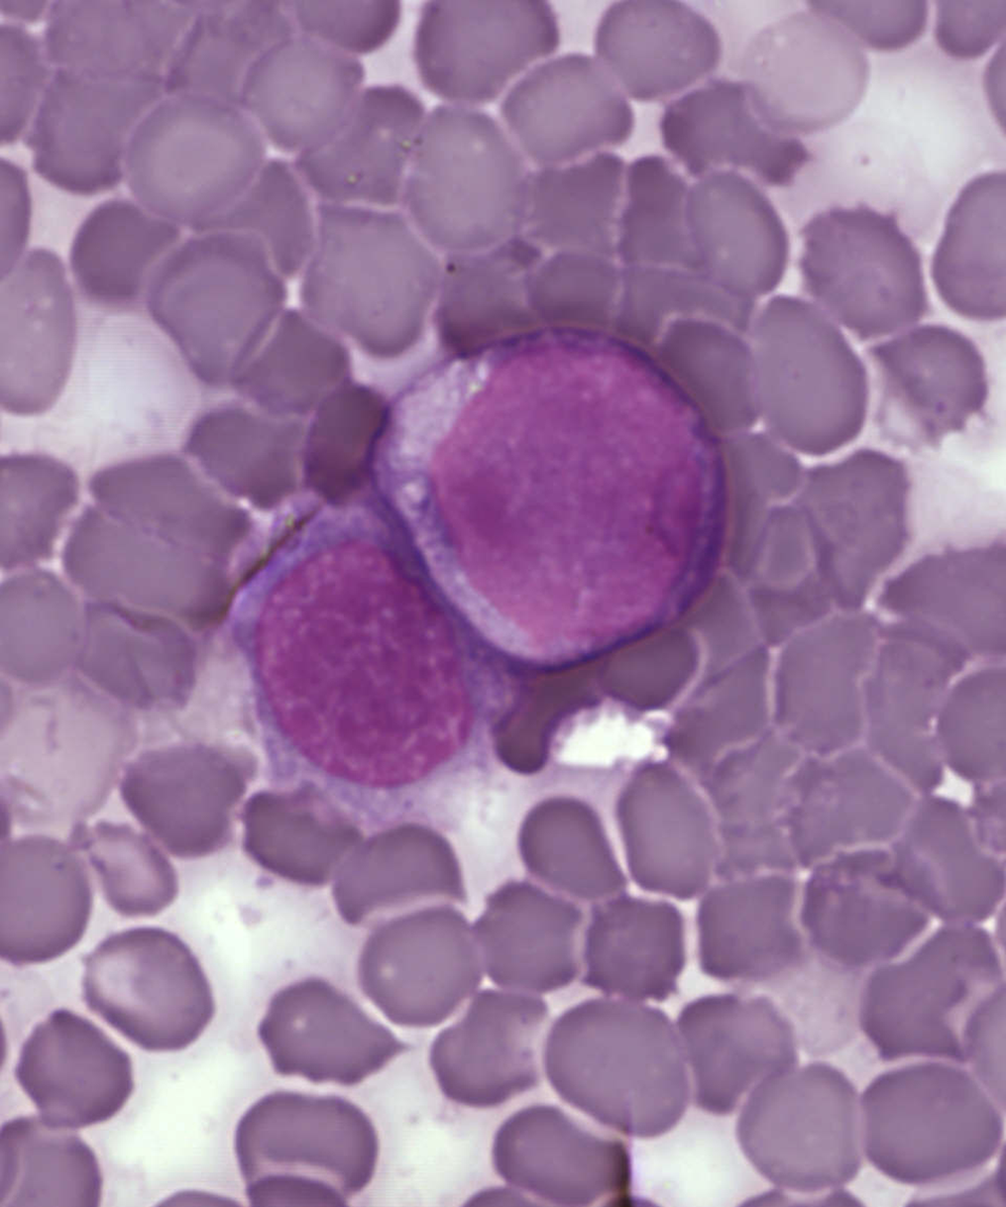 Leukemia cells Source: PLOSone